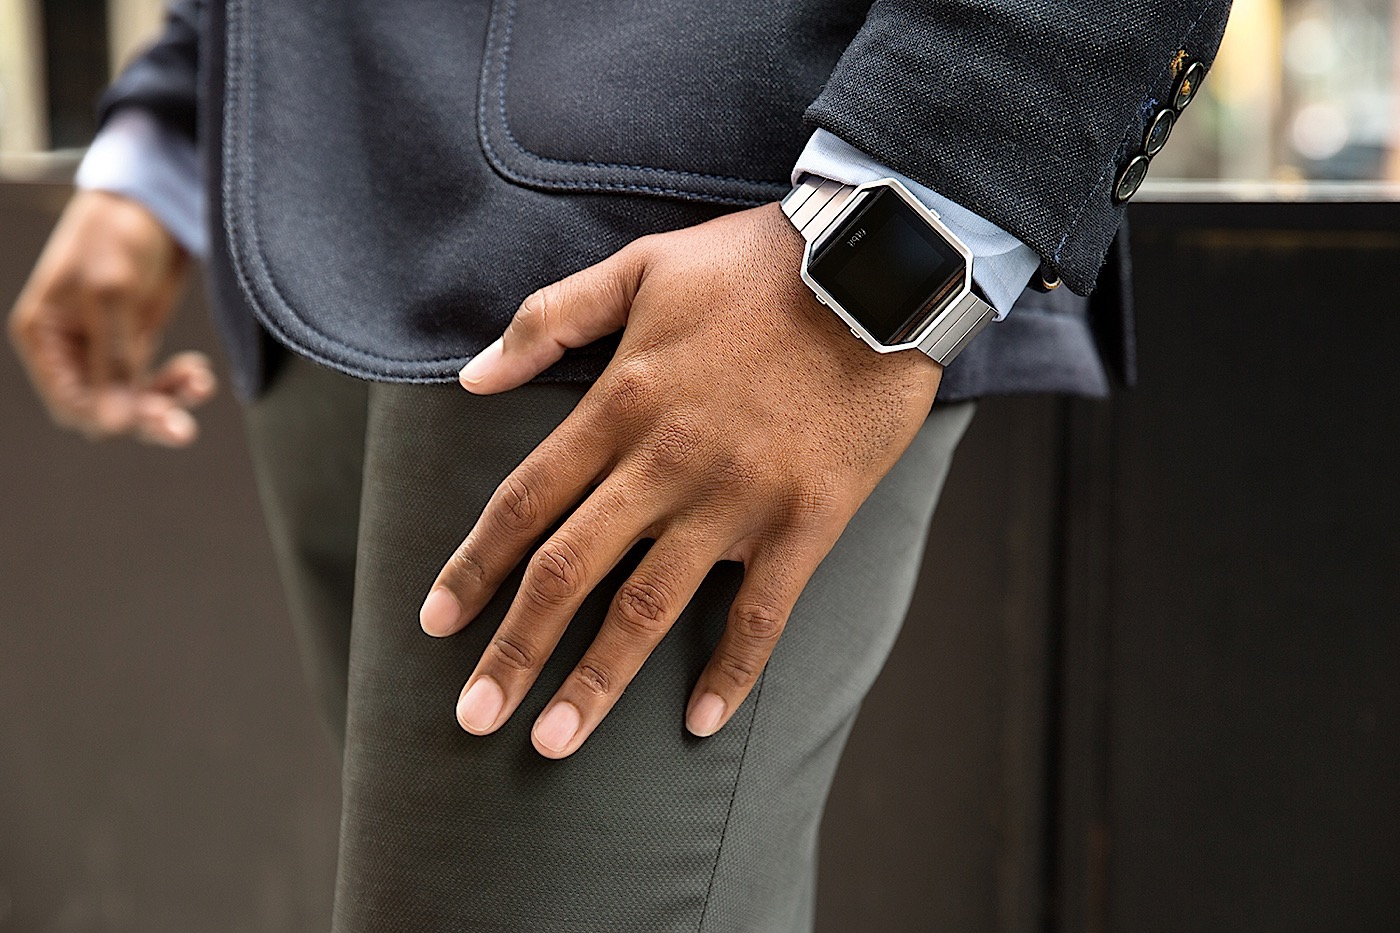 Fitbit Blaze is a $200 smartwatch with a focus on fitness